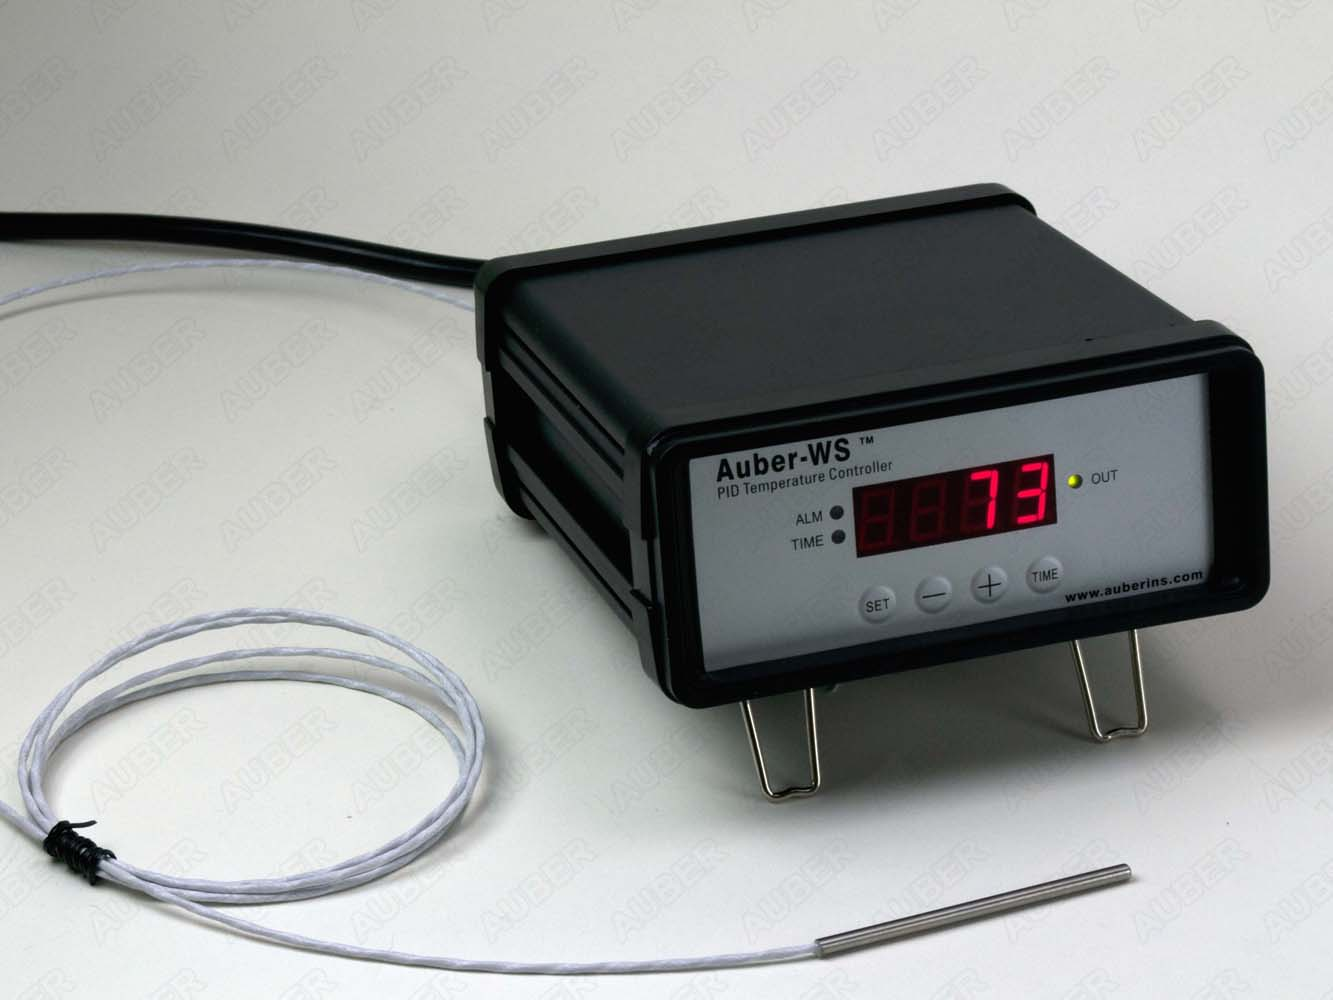 WS1210GPH_F auberins com, temperature control solutions for home and industry  at bayanpartner.co